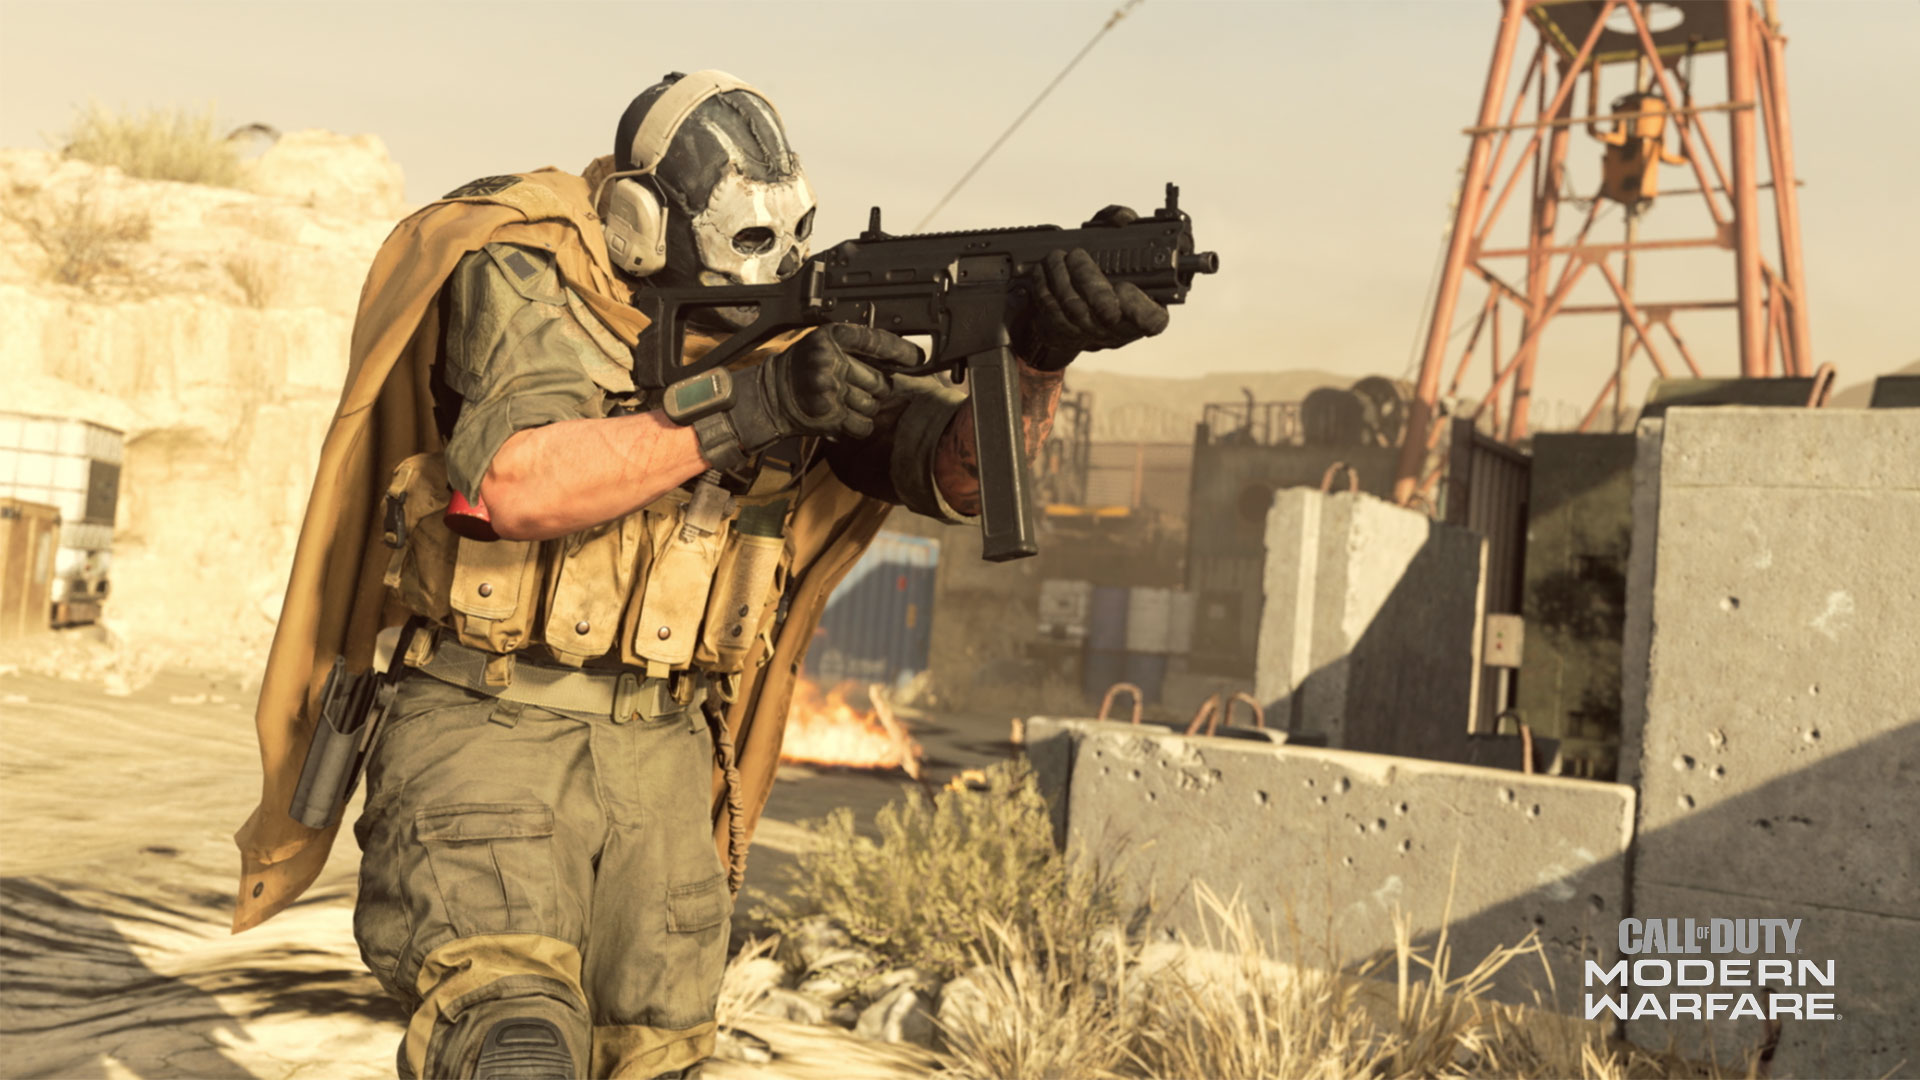 This Week in Call of Duty® - June 15 - Image 8